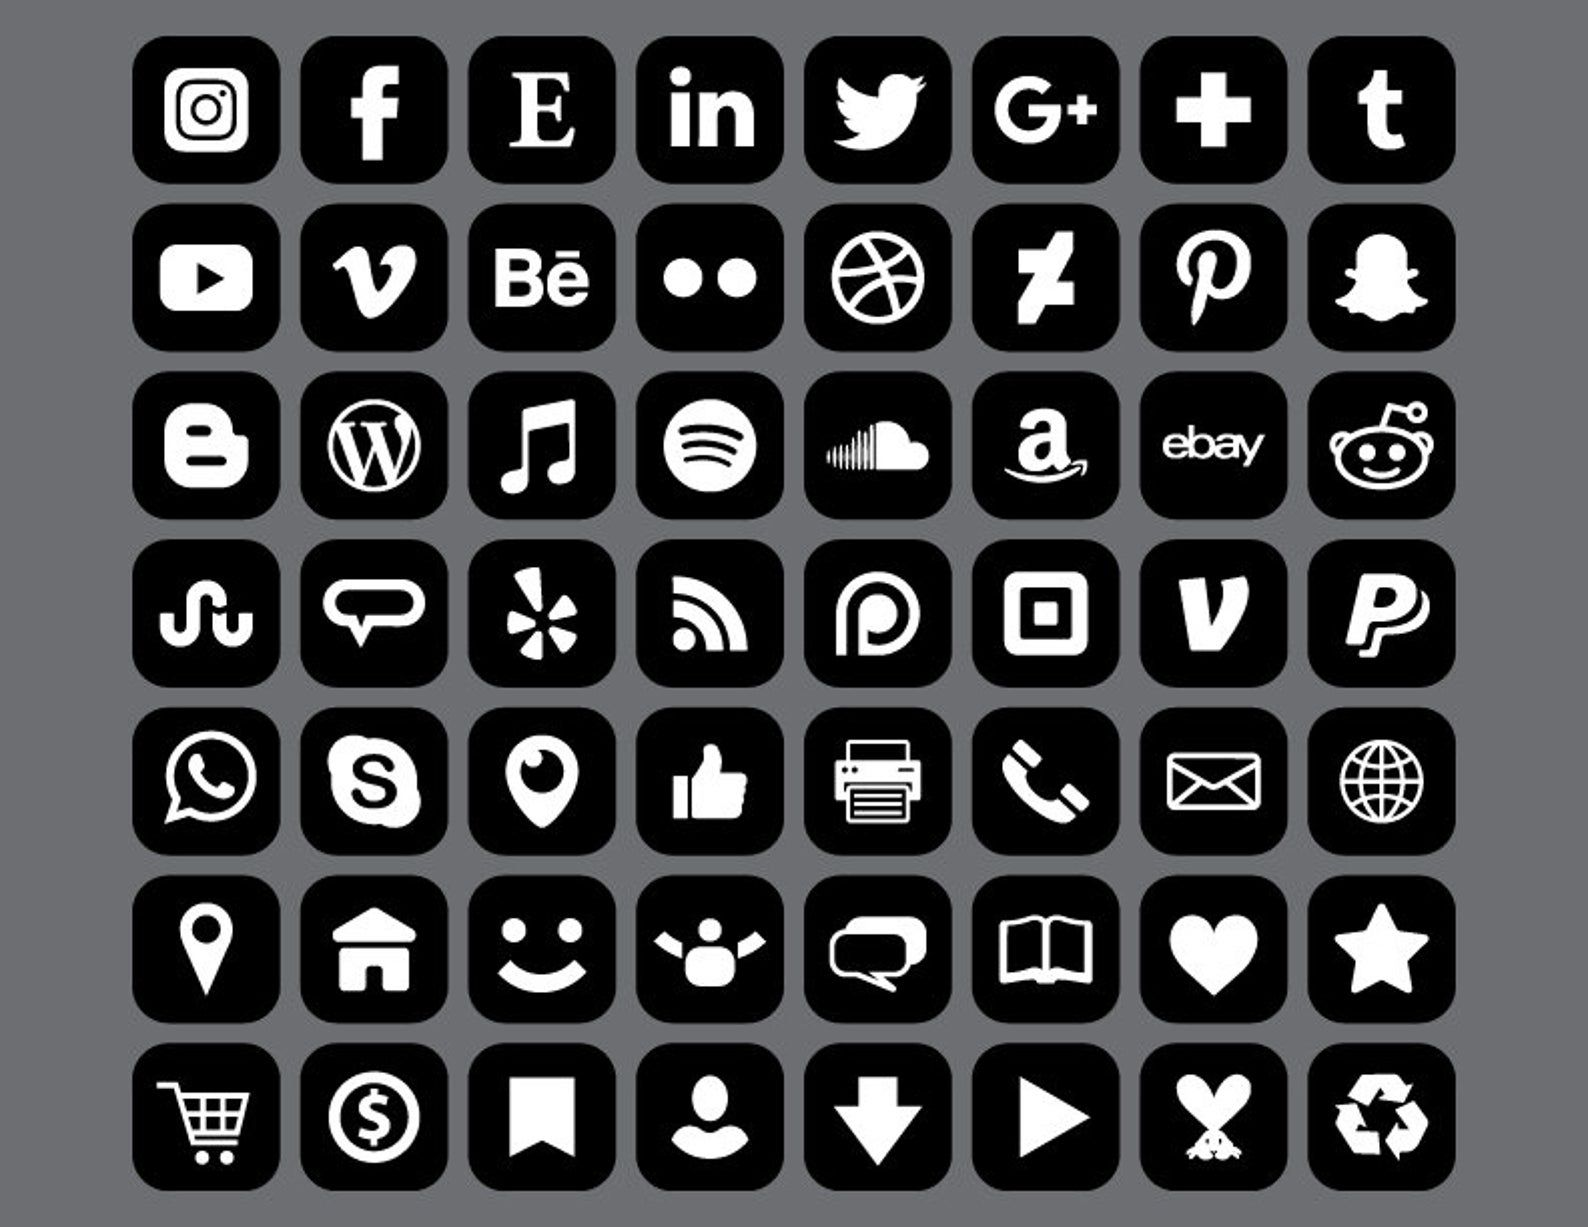 Square Social Media Icons Set Png Svg Vector Transparent Rounded Corner Black White Flat Buttons Website Digital Icons Commercial Use Social Media Icons Media Icon Icon Set